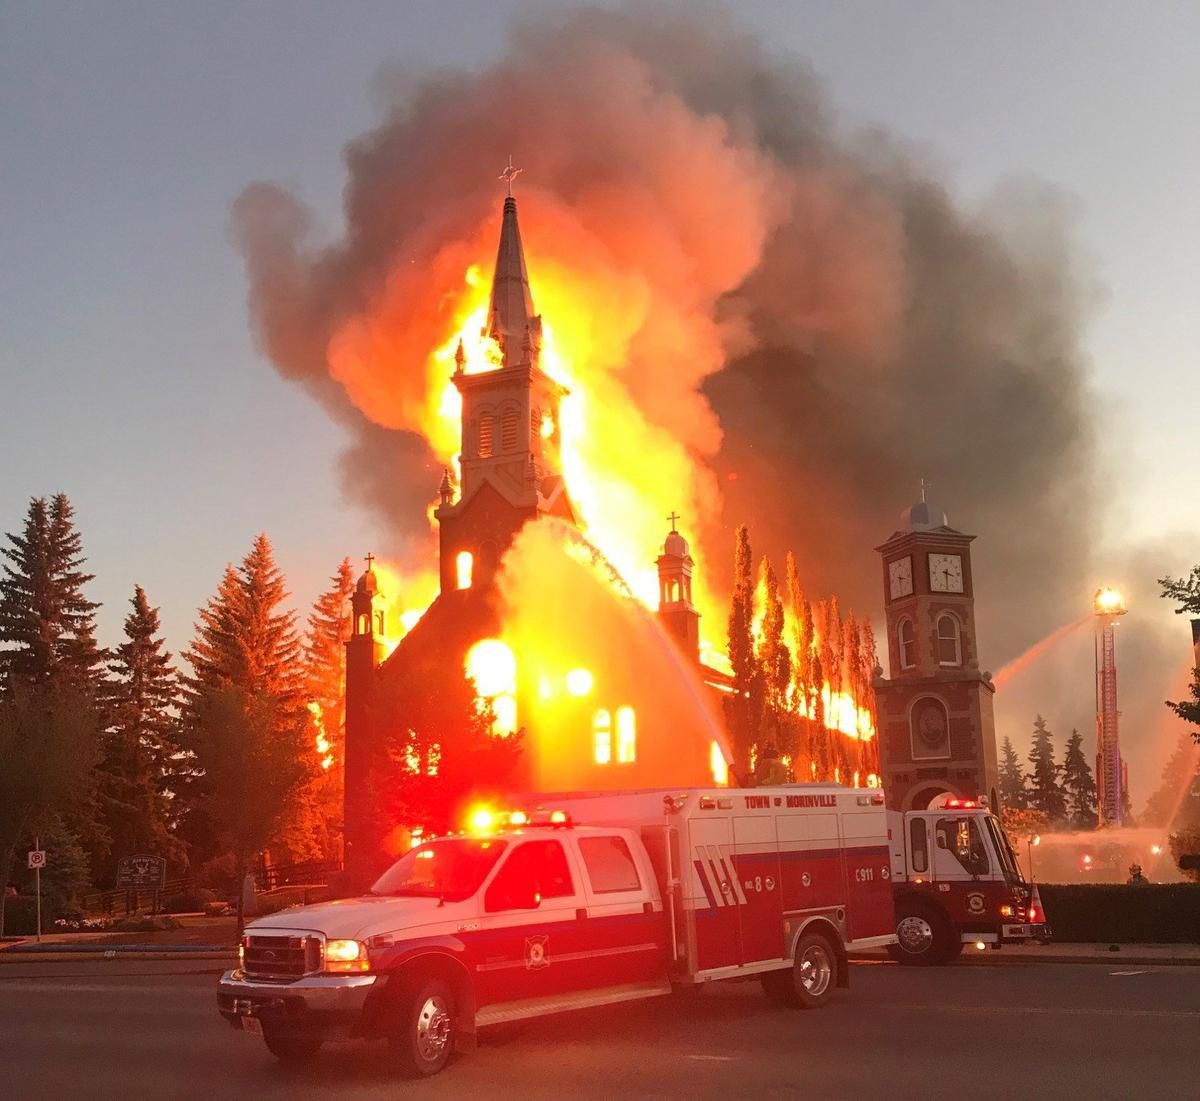 Churches being burned in Canada